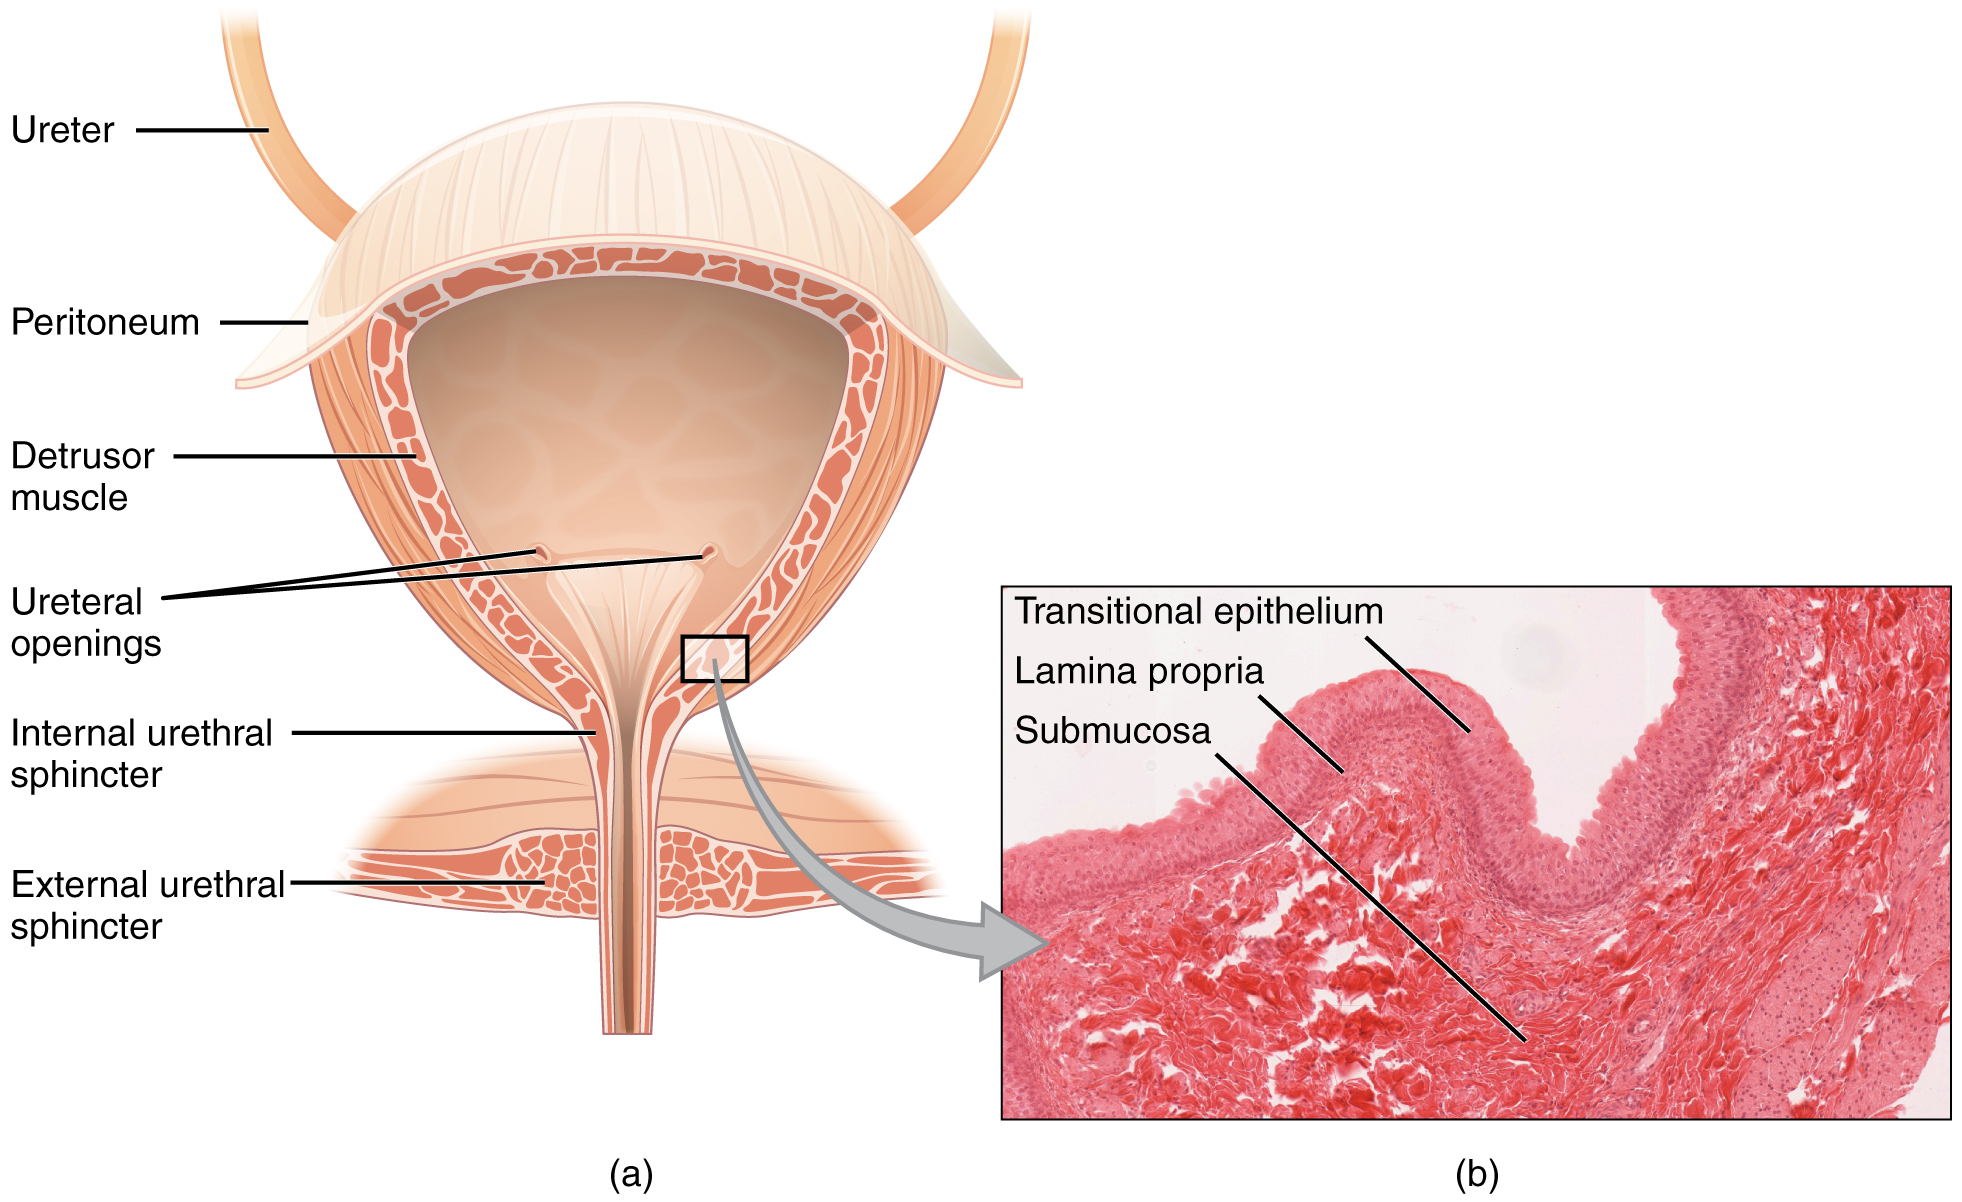 The left panel of this figure shows the cross section of the bladder and the major parts are labeled. The right panel shows a micrograph of the bladder.